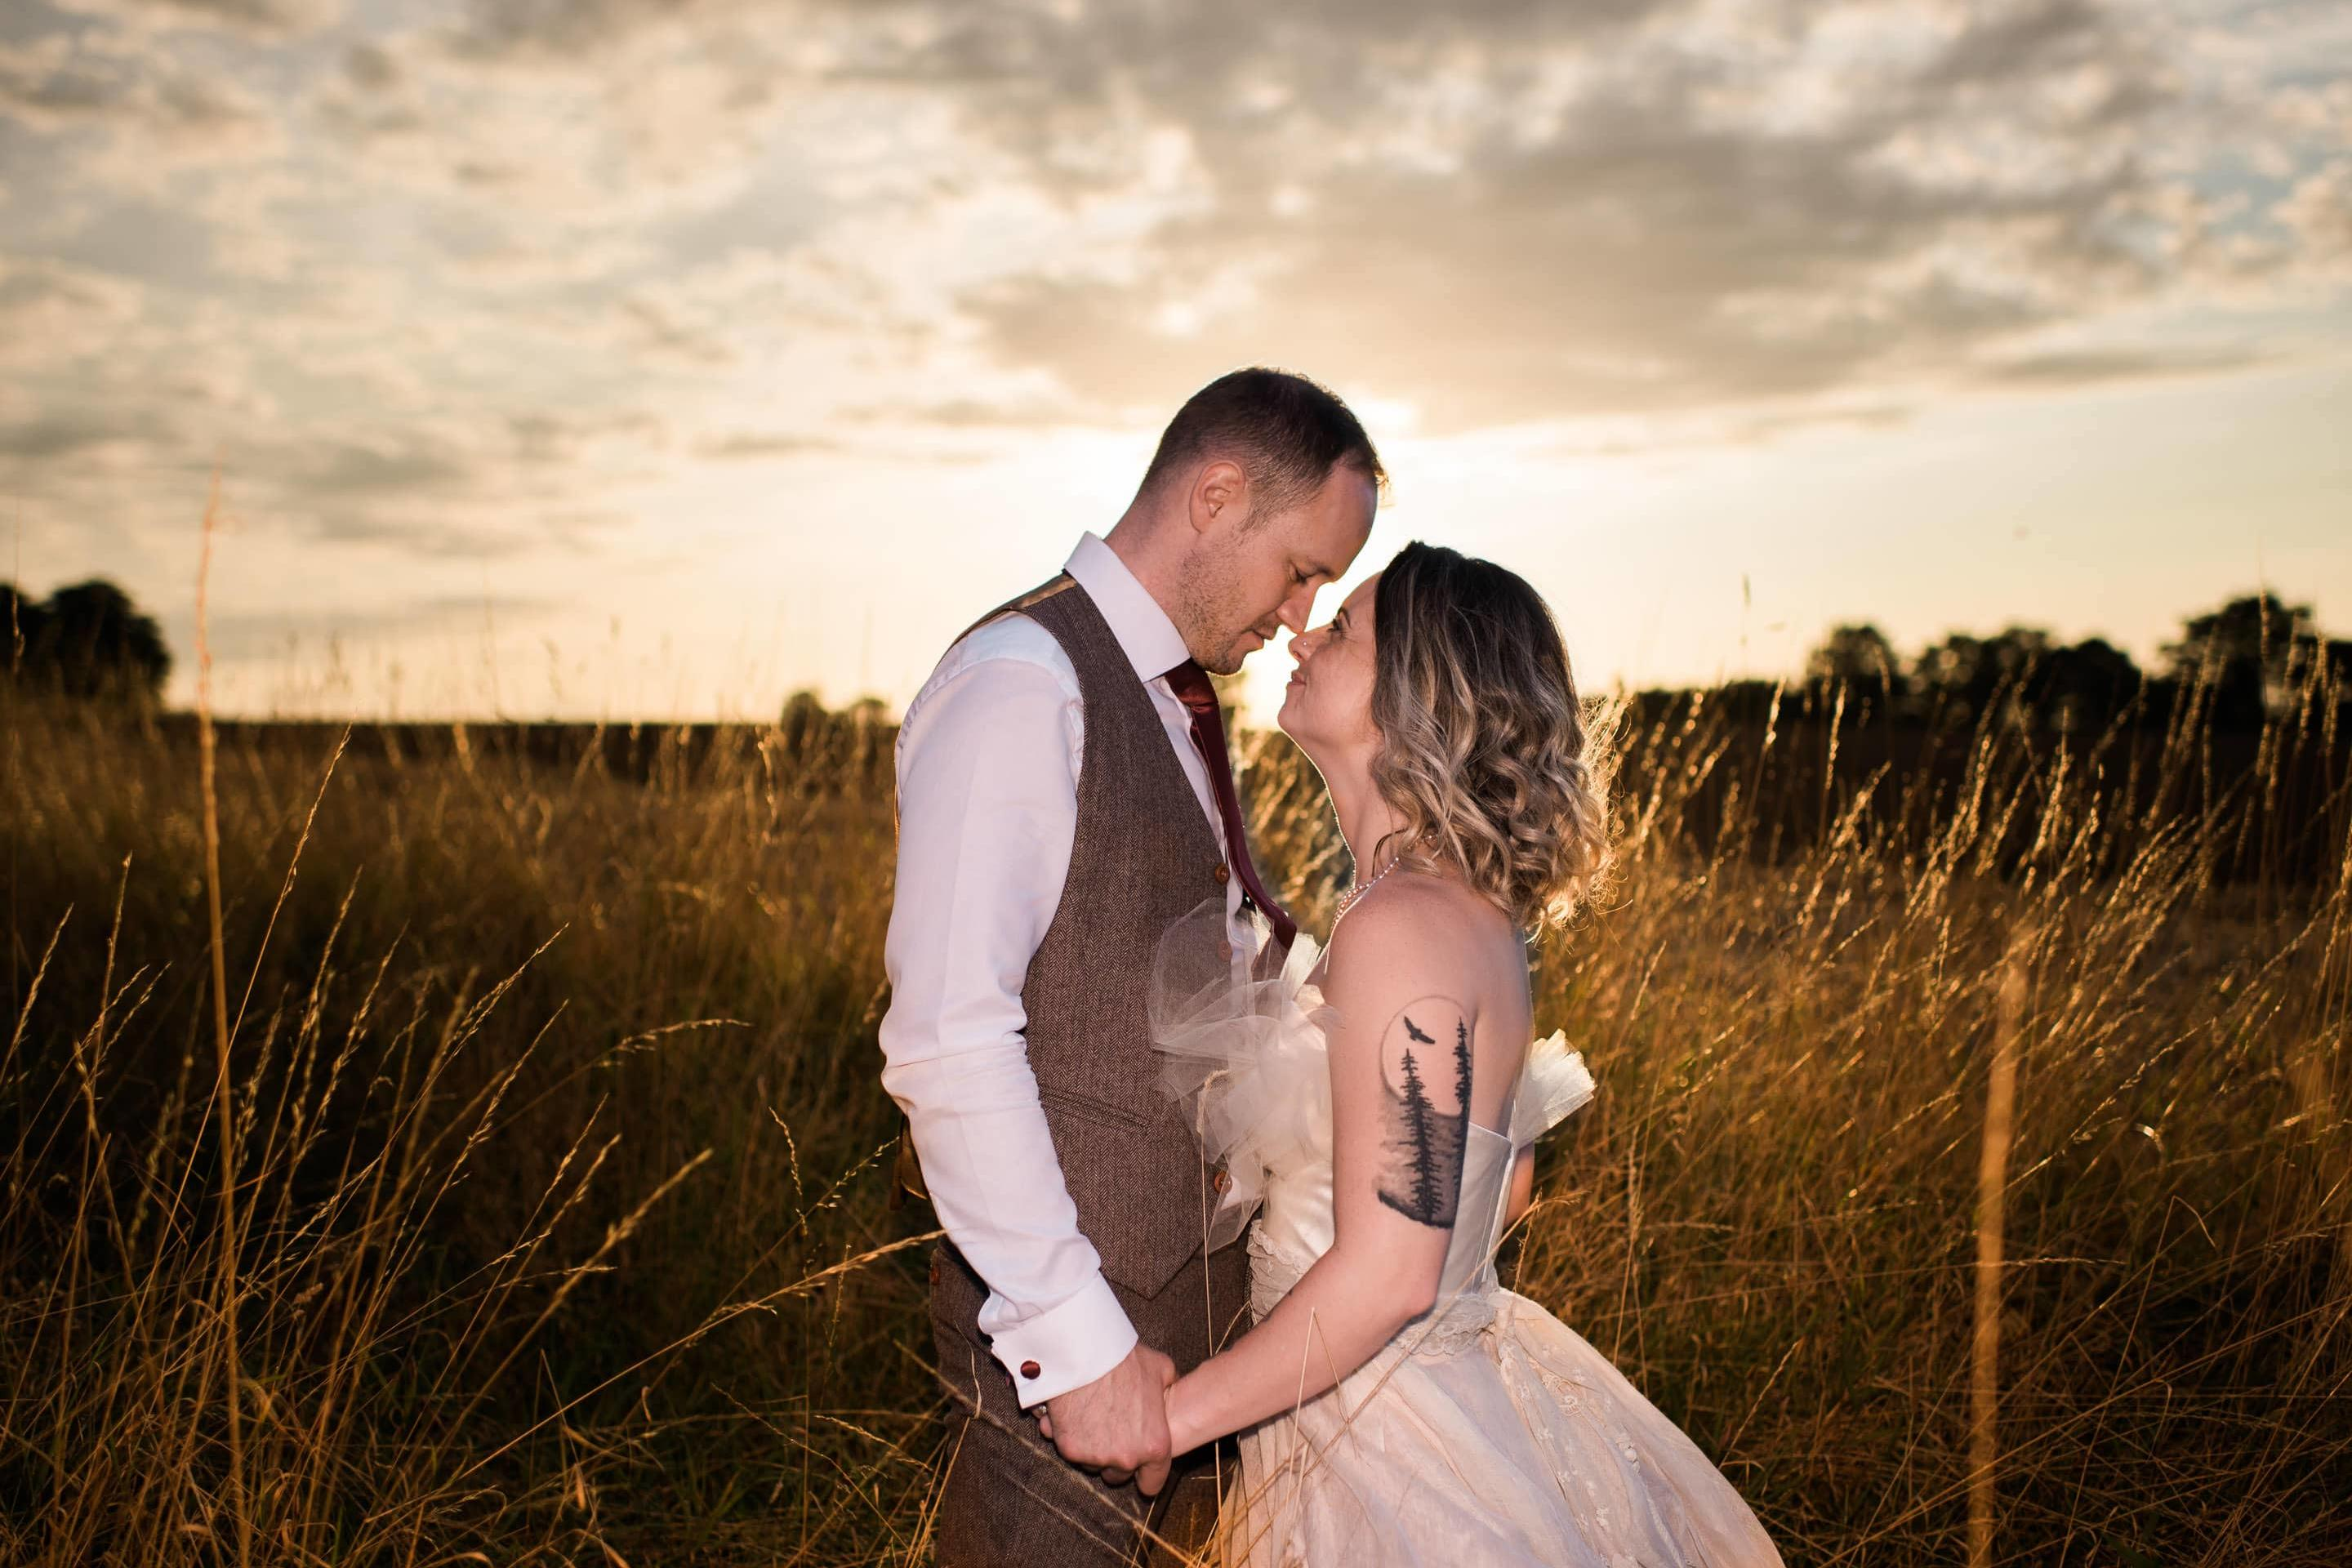 How to Get the Most Out of Your Wedding Photographer 151